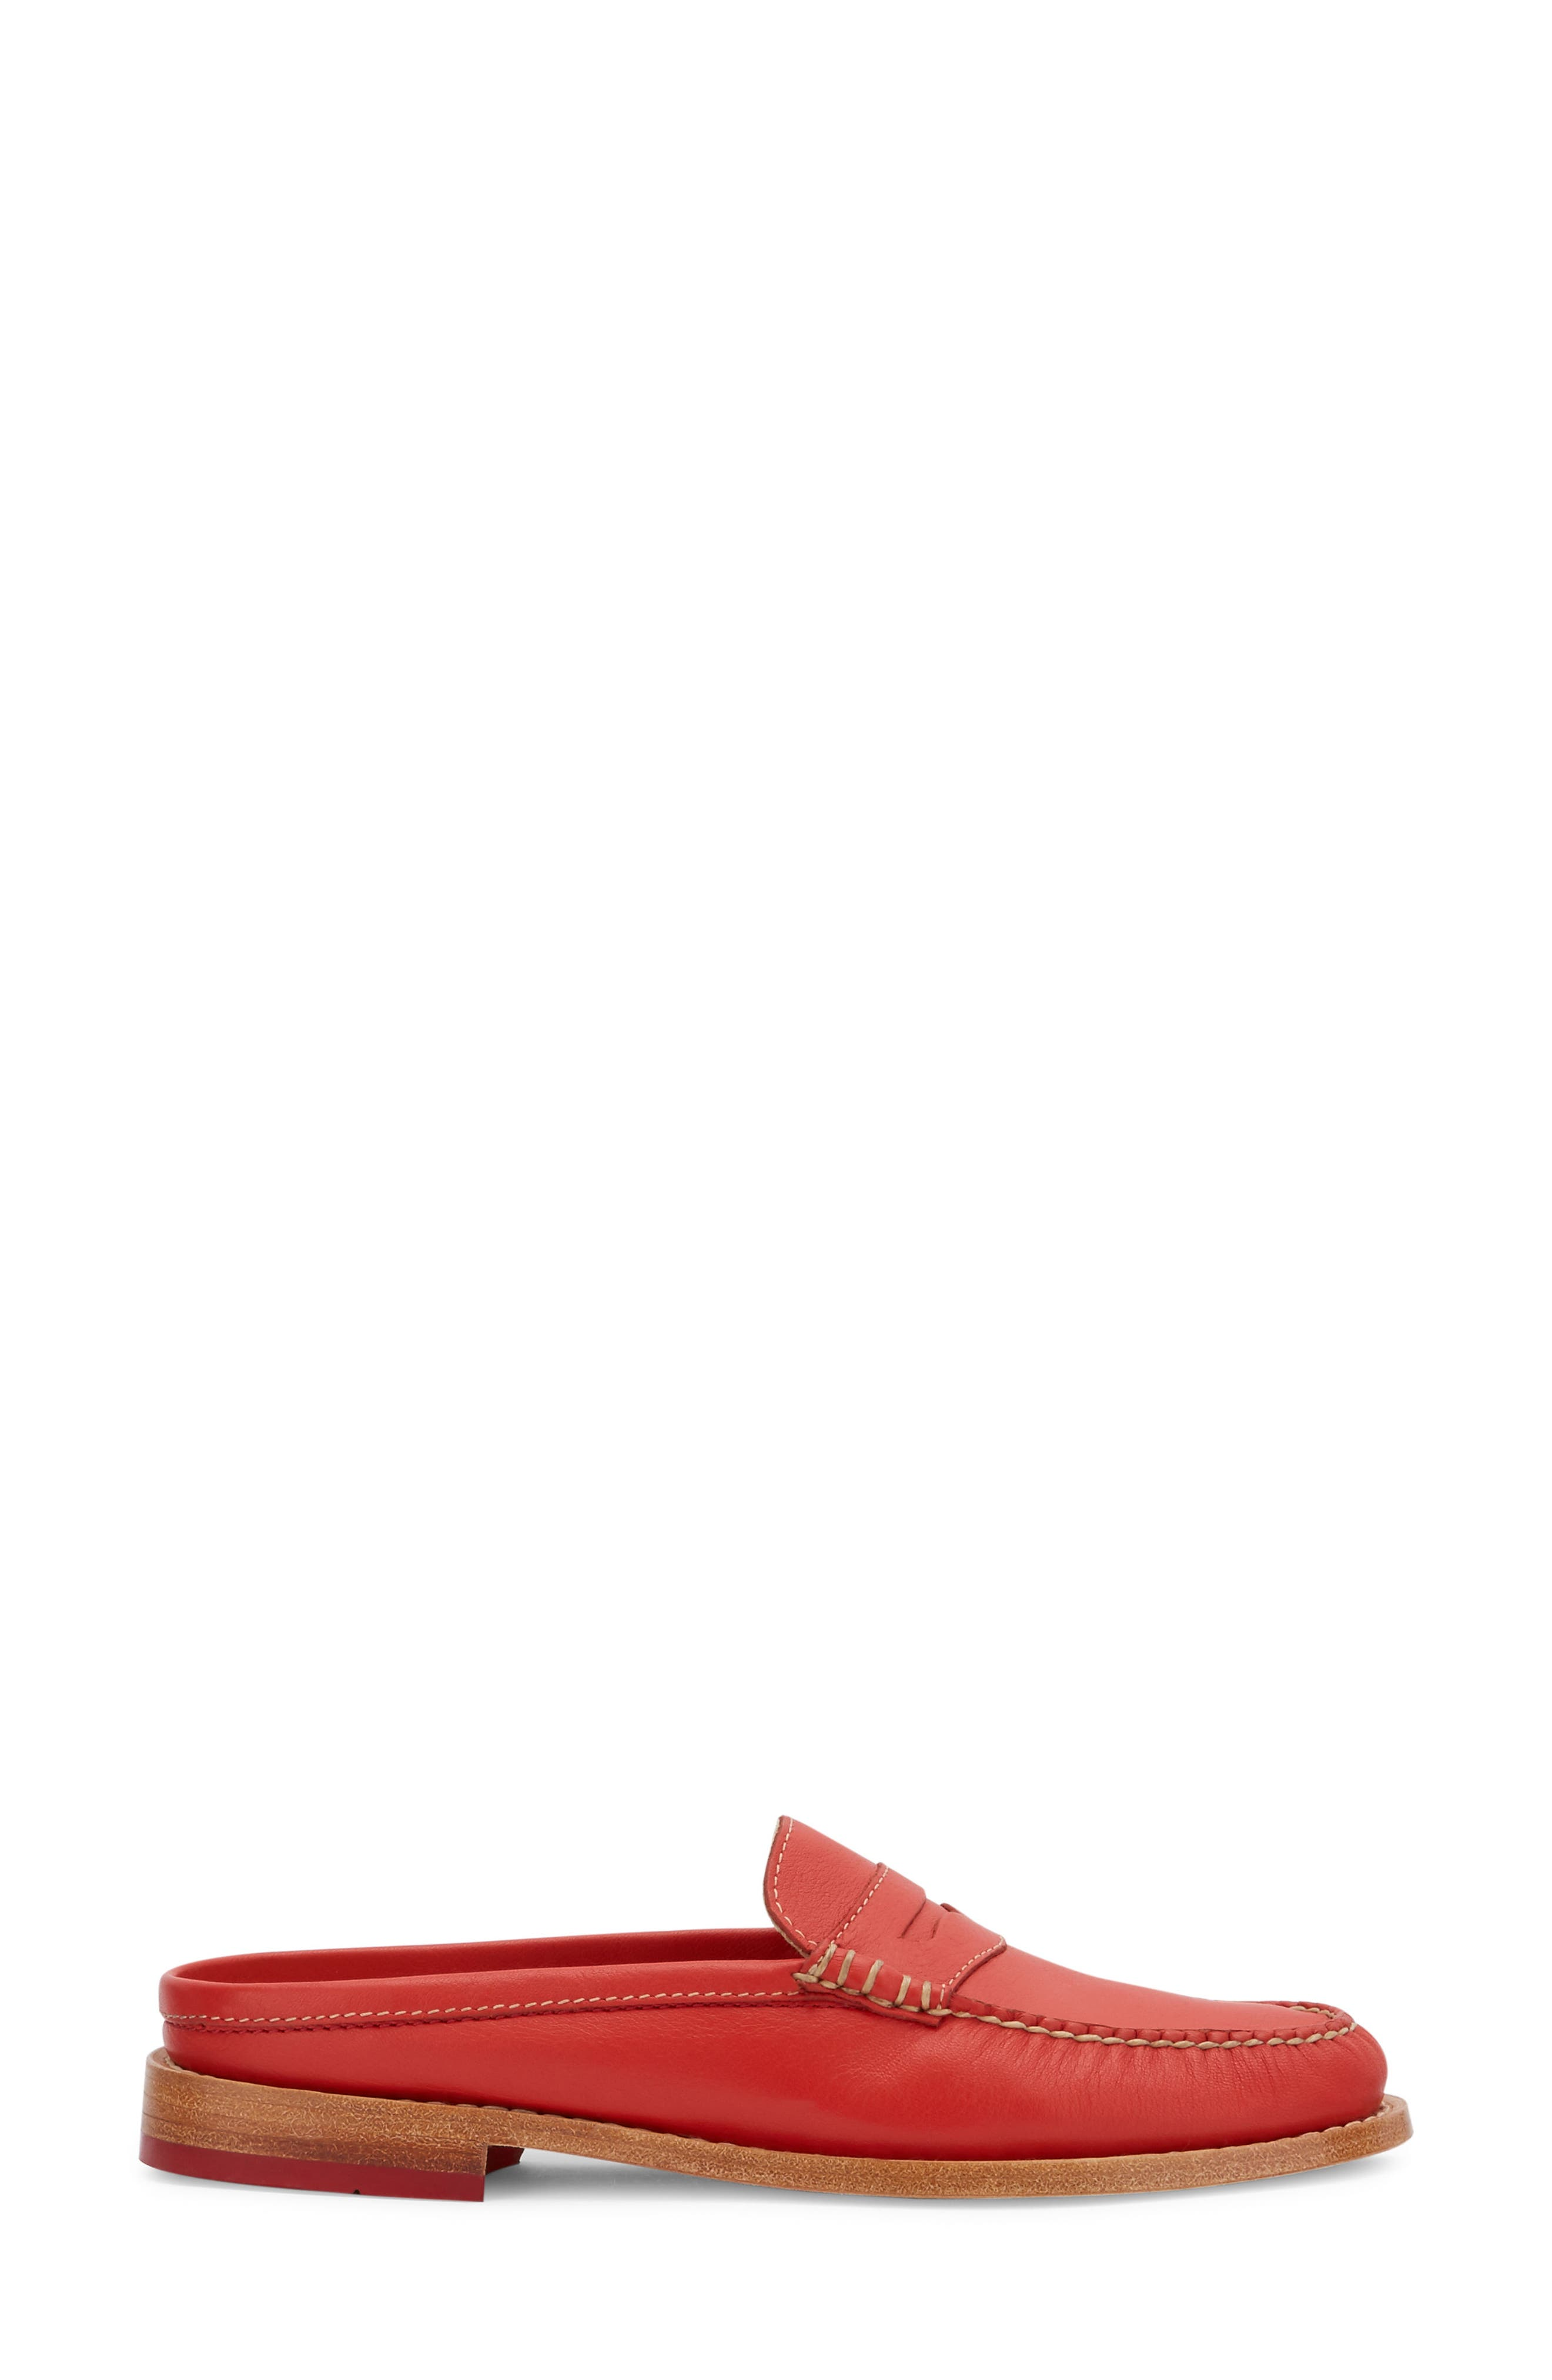 Wynn Loafer Mule,                             Alternate thumbnail 3, color,                             Roma Red Leather